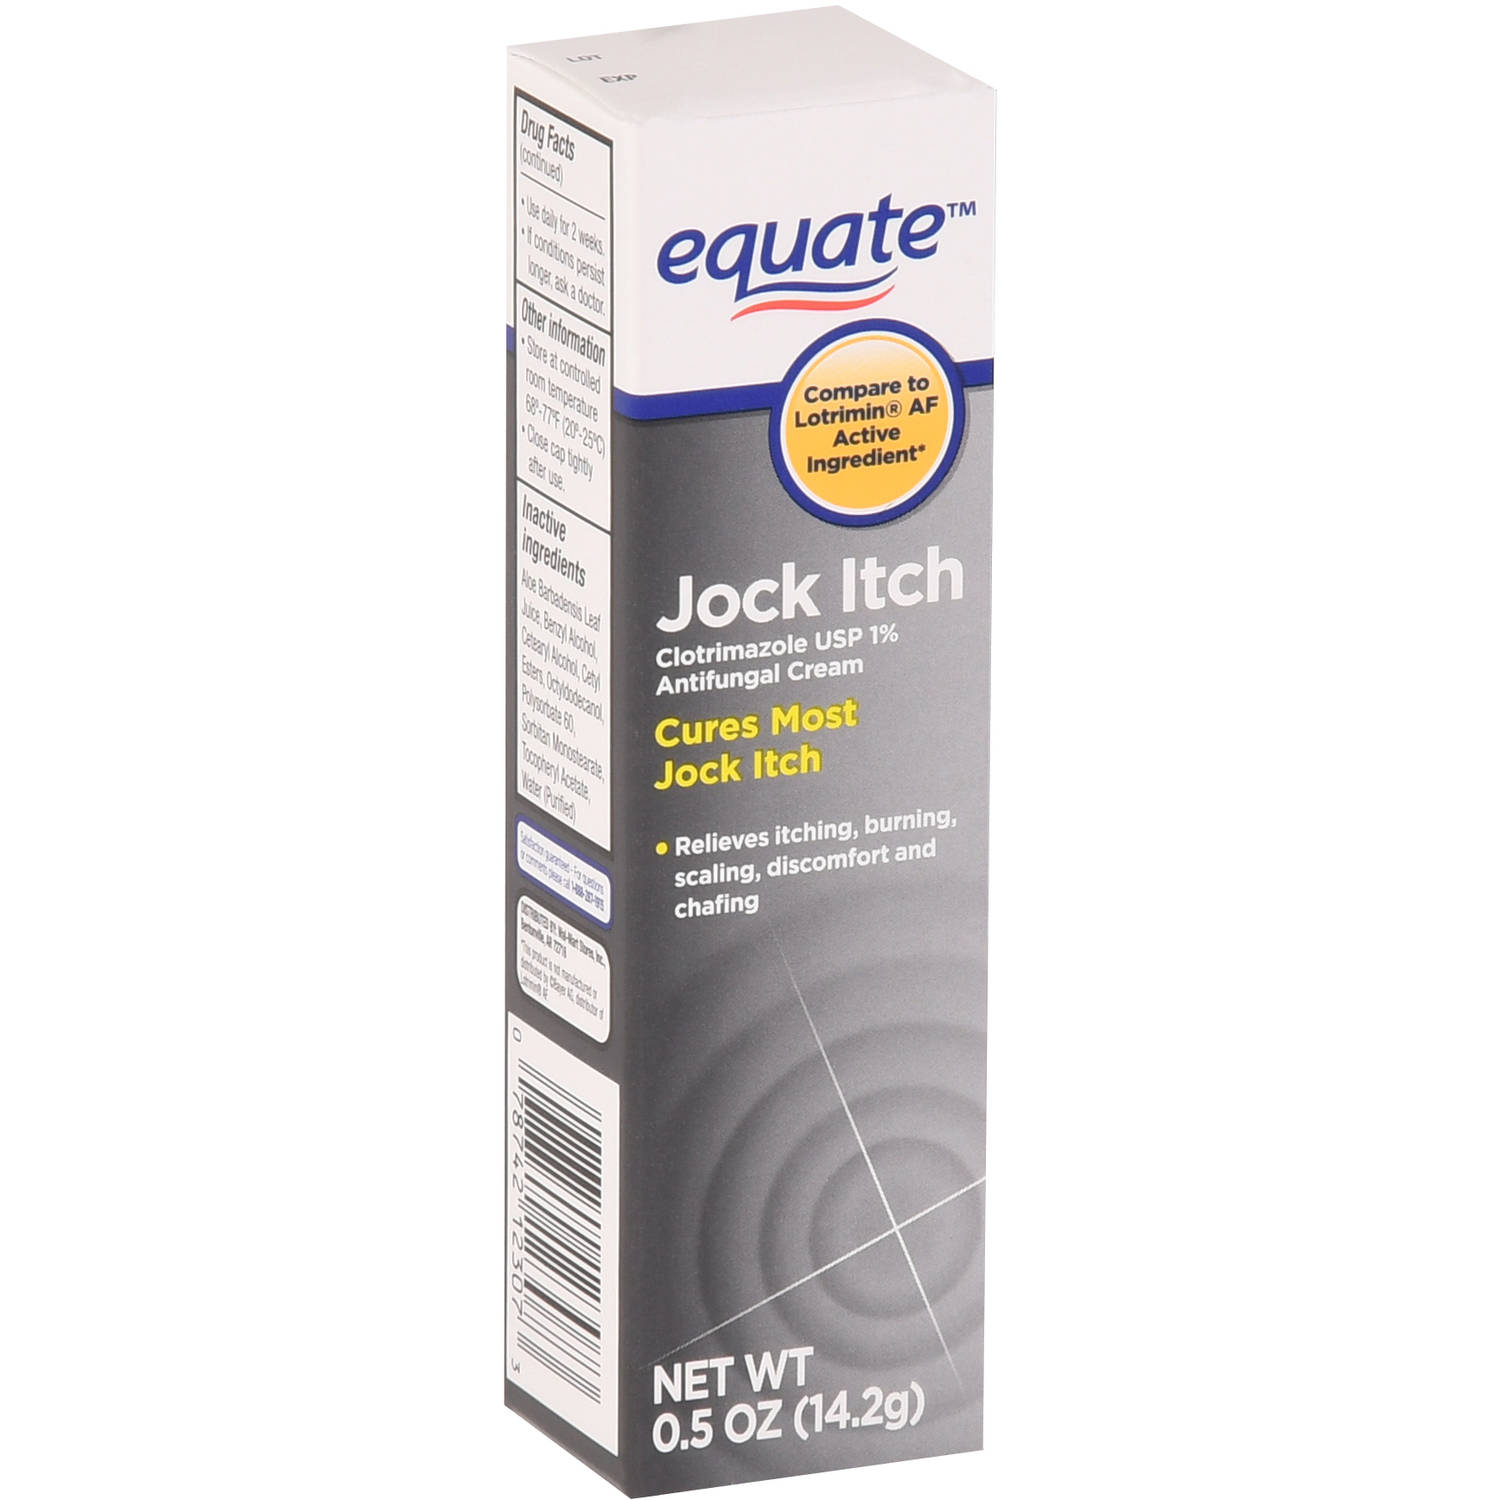 Equate Jock Itch Antifungal Cream, 0.5 oz